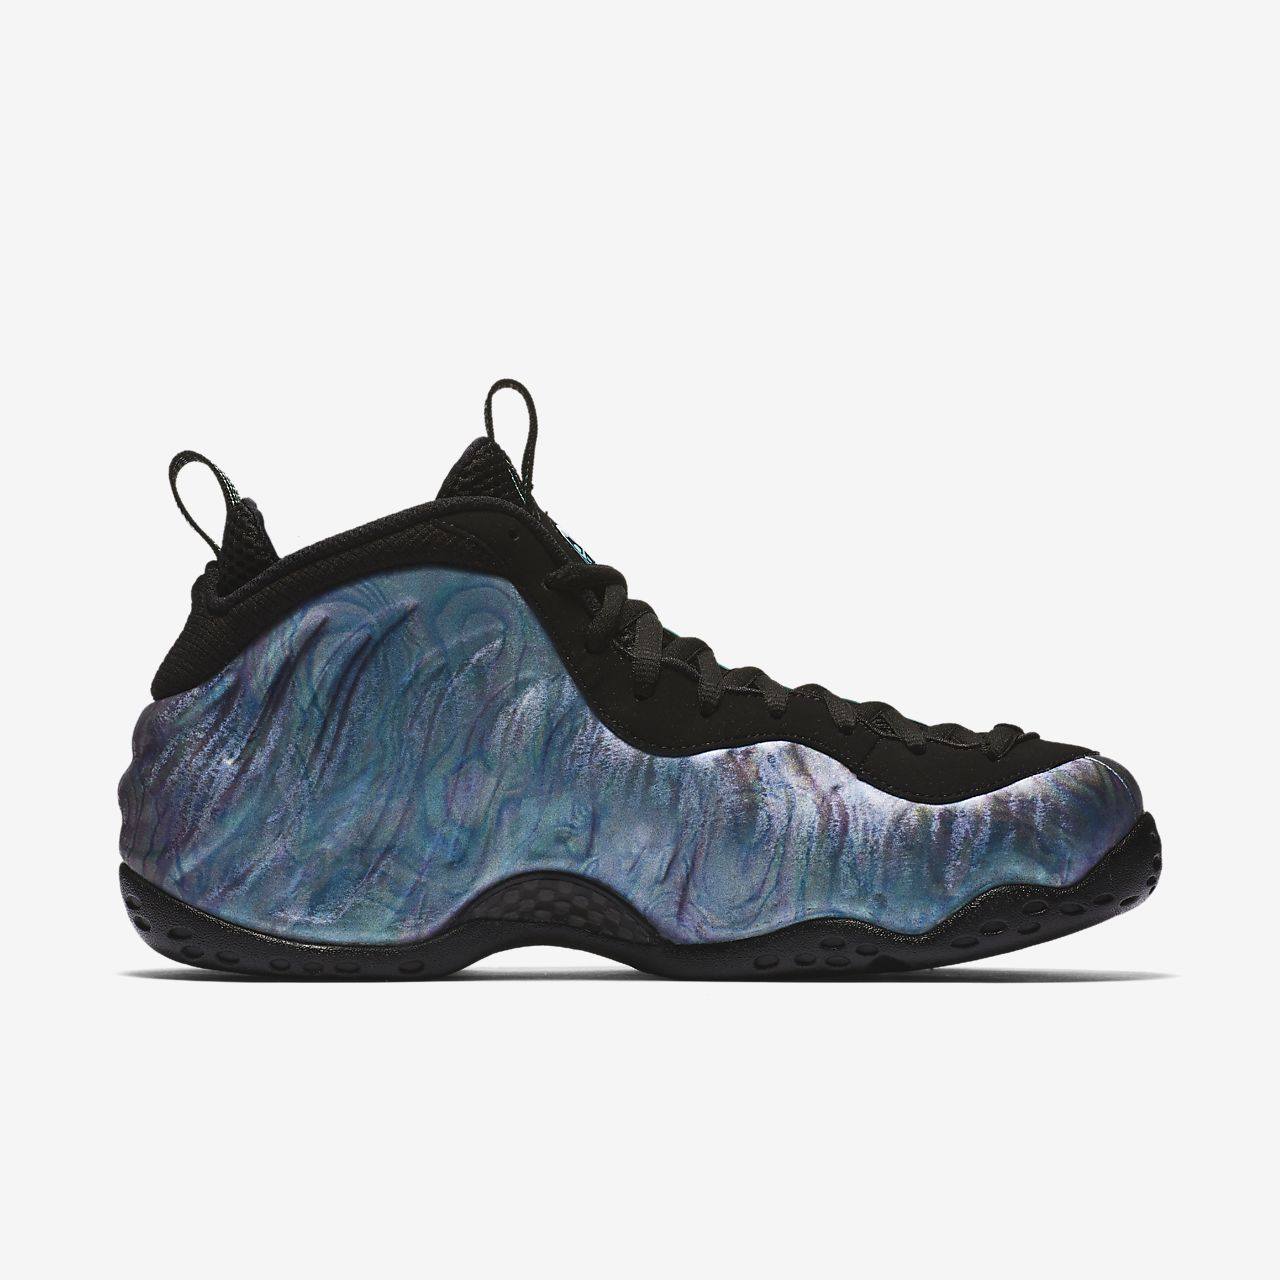 0a46af0d72c Nike Air Foamposite 1 Premium Men s Shoe. Nike.com ID